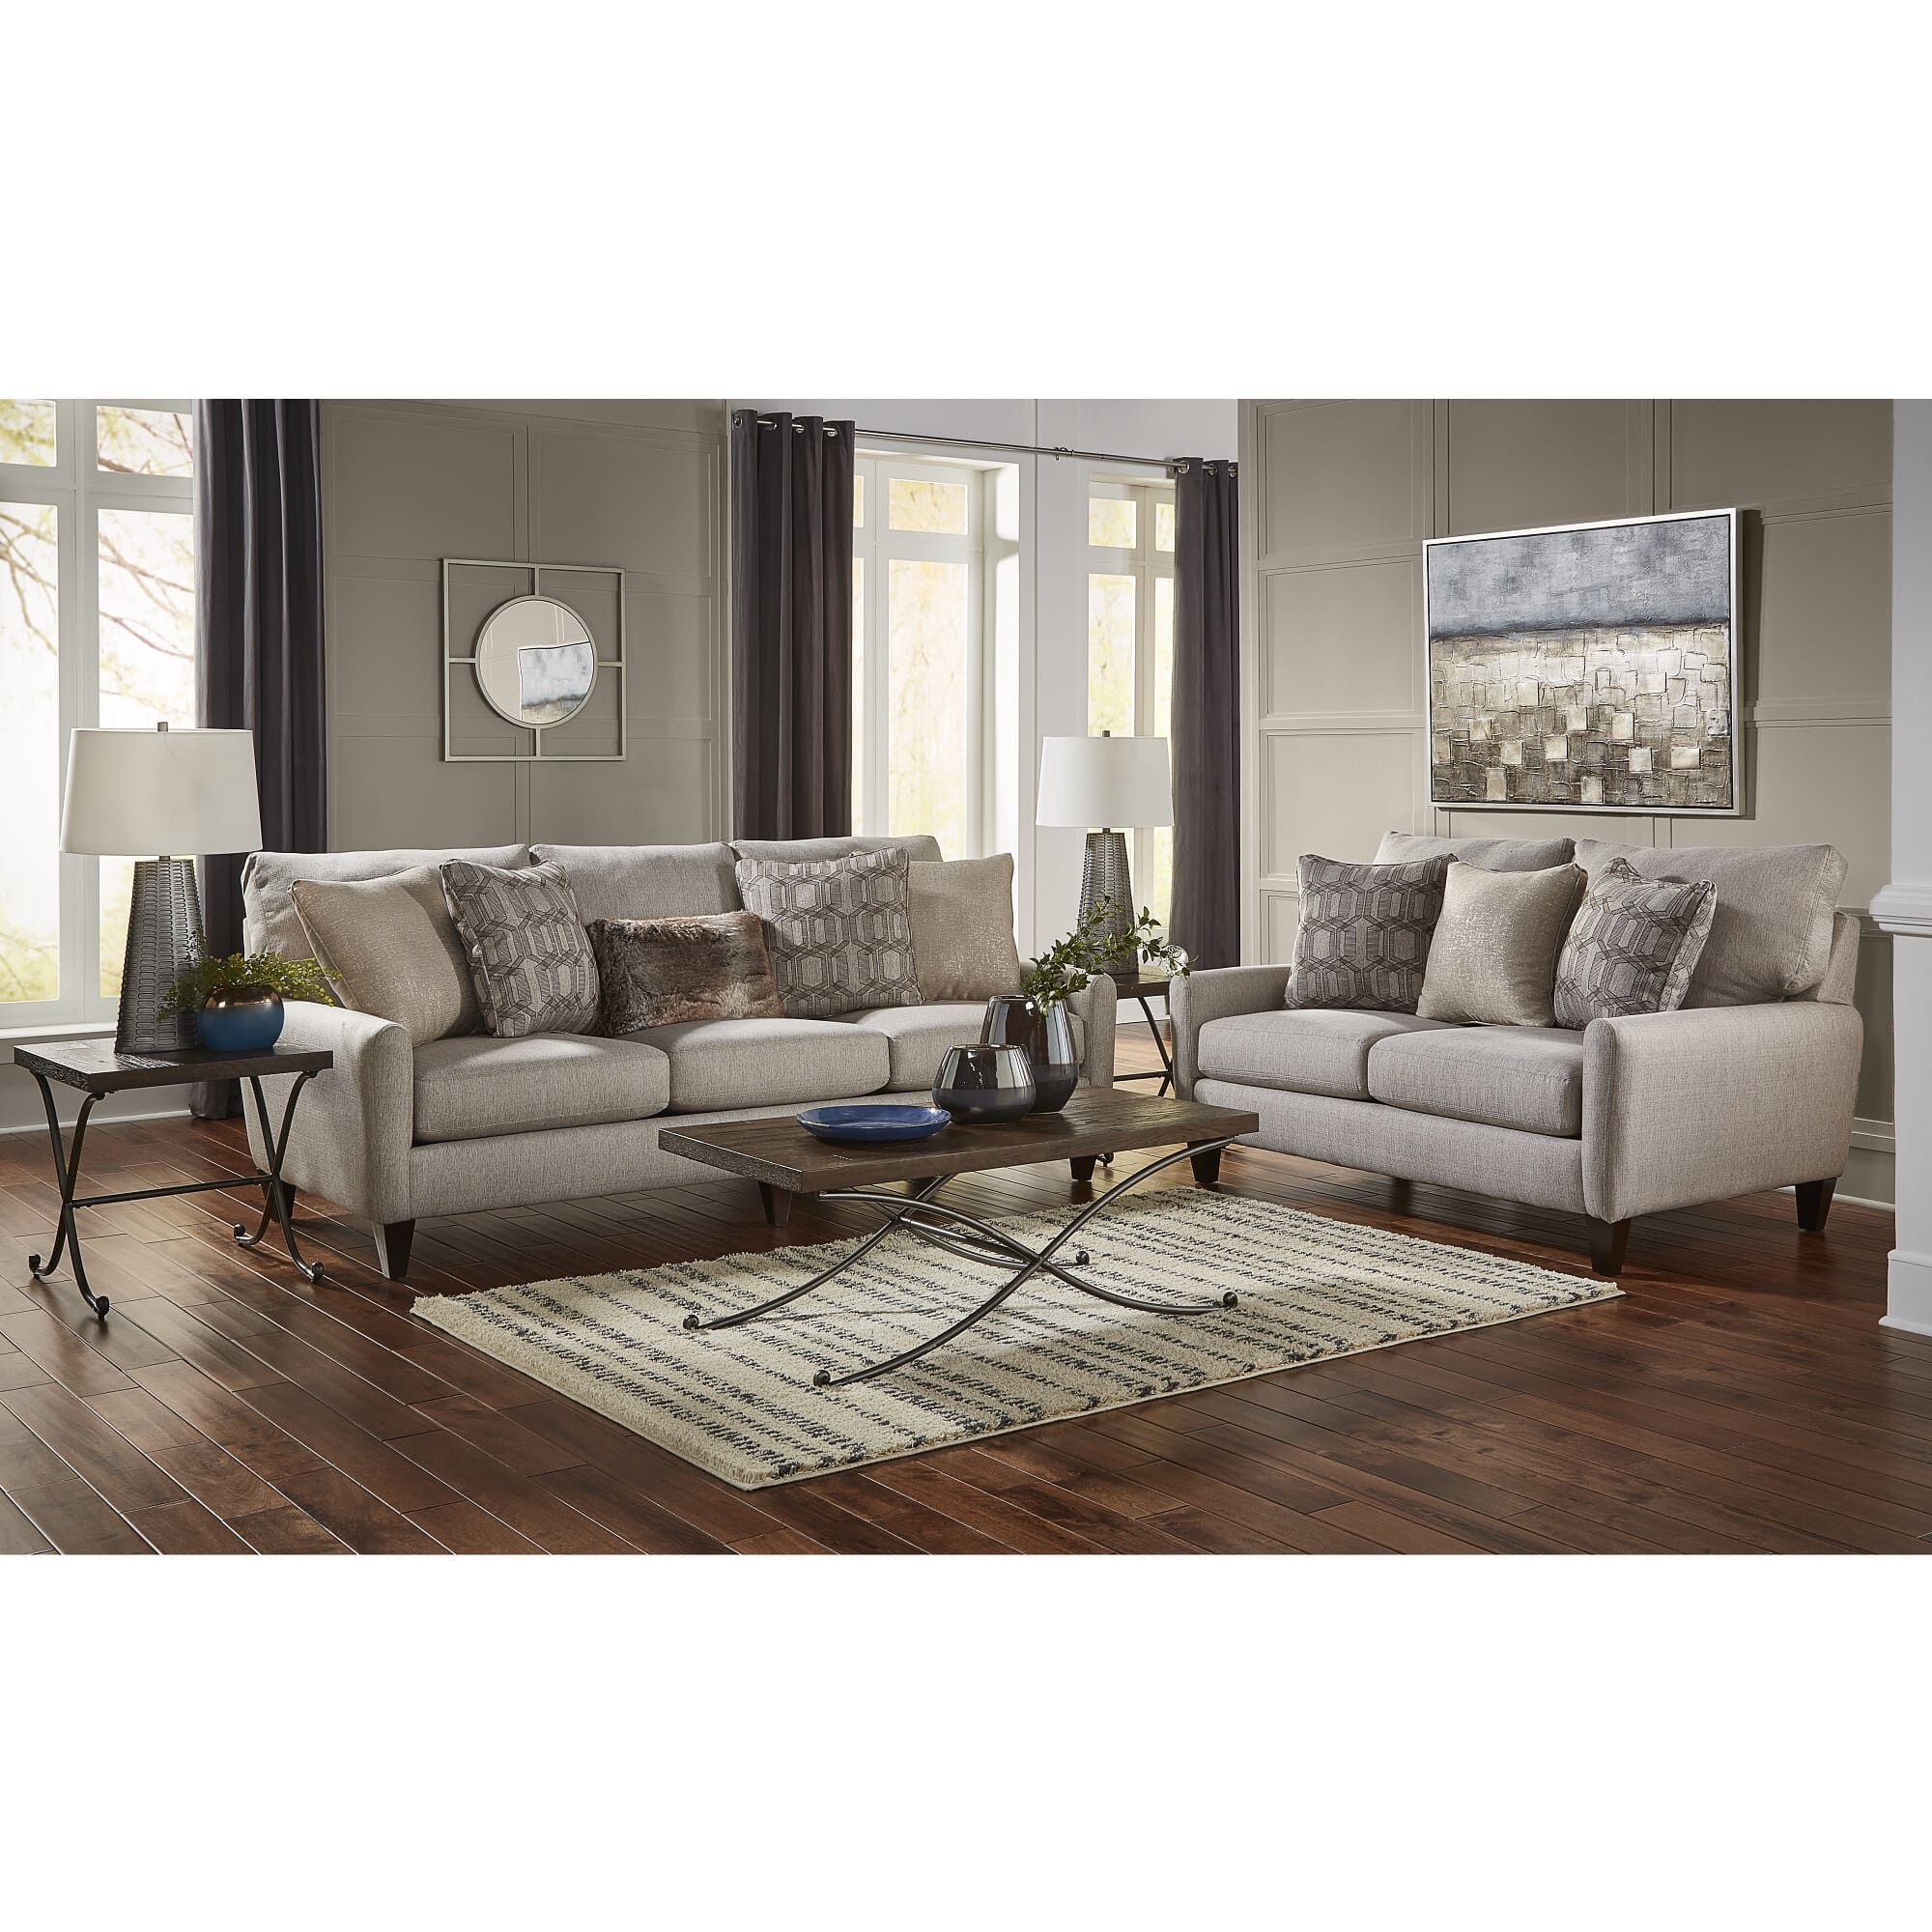 2 Piece Ackland Living Room Collection Lease to